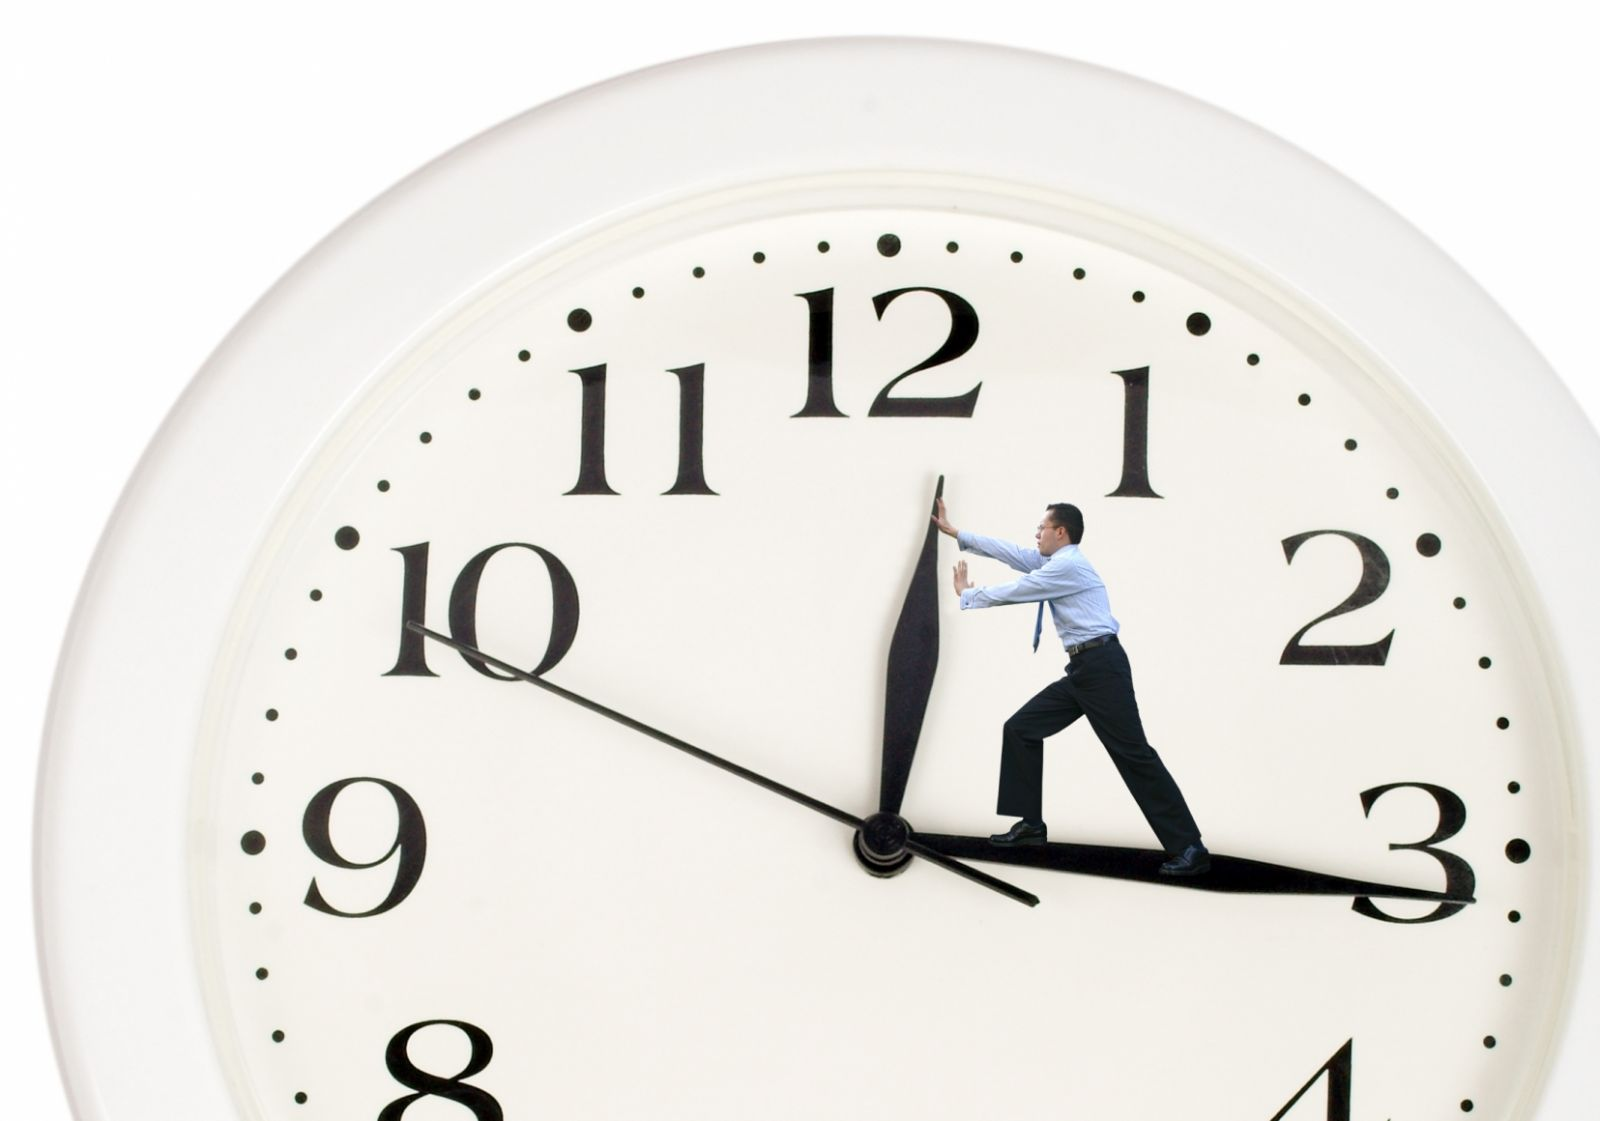 Reversed clipart clock Time aging Turn Turn the